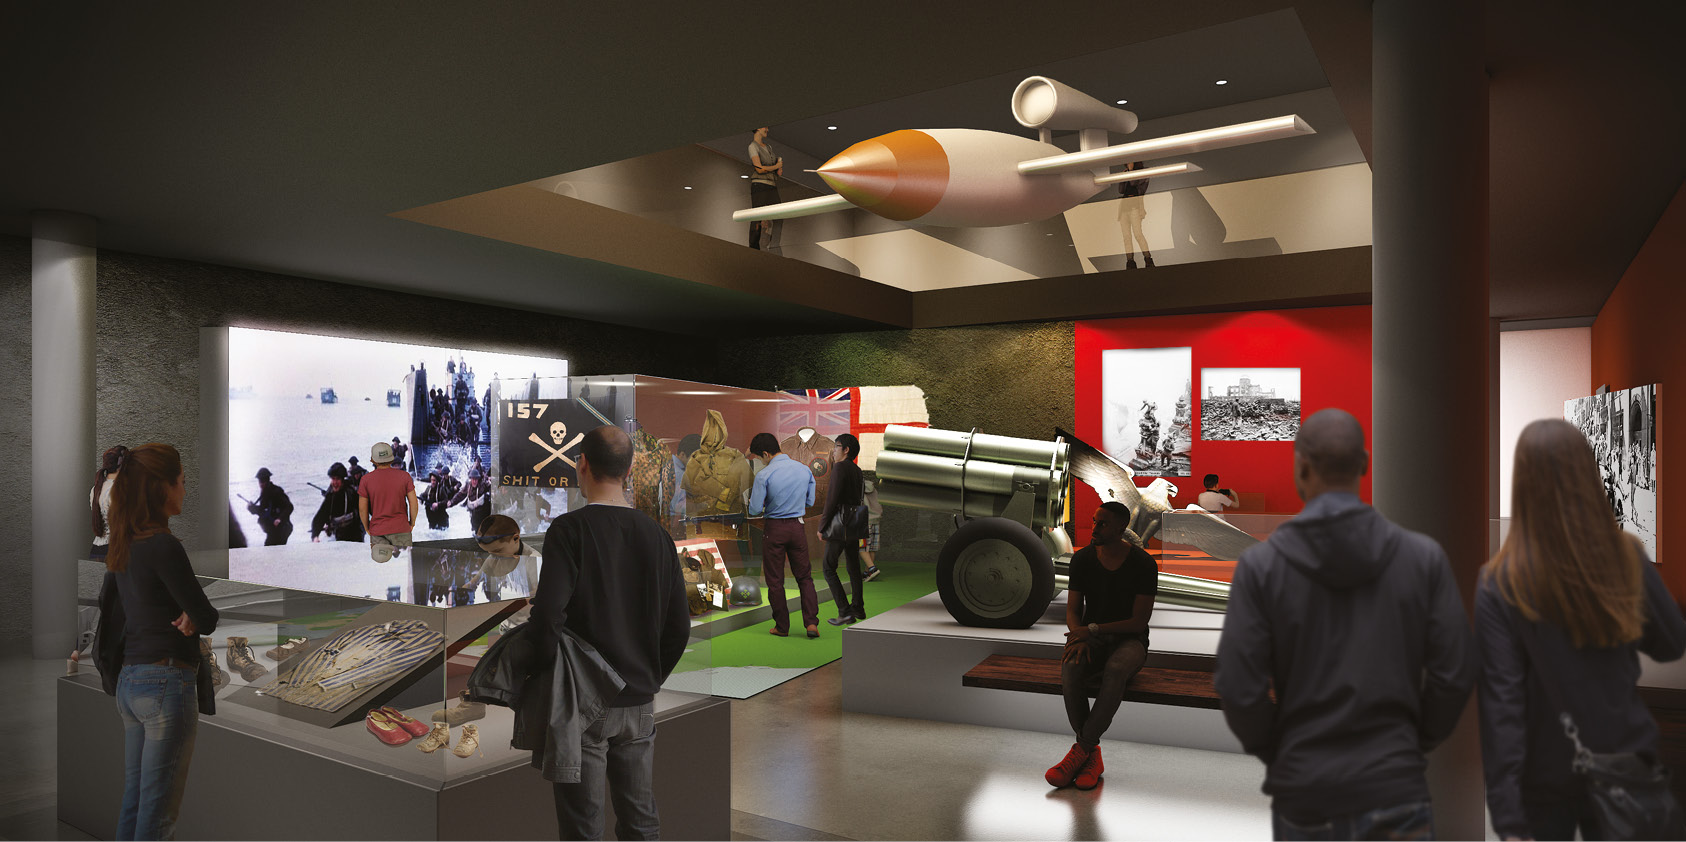 IWM to open 'extensive' new galleries on the Second World War and Holocaust